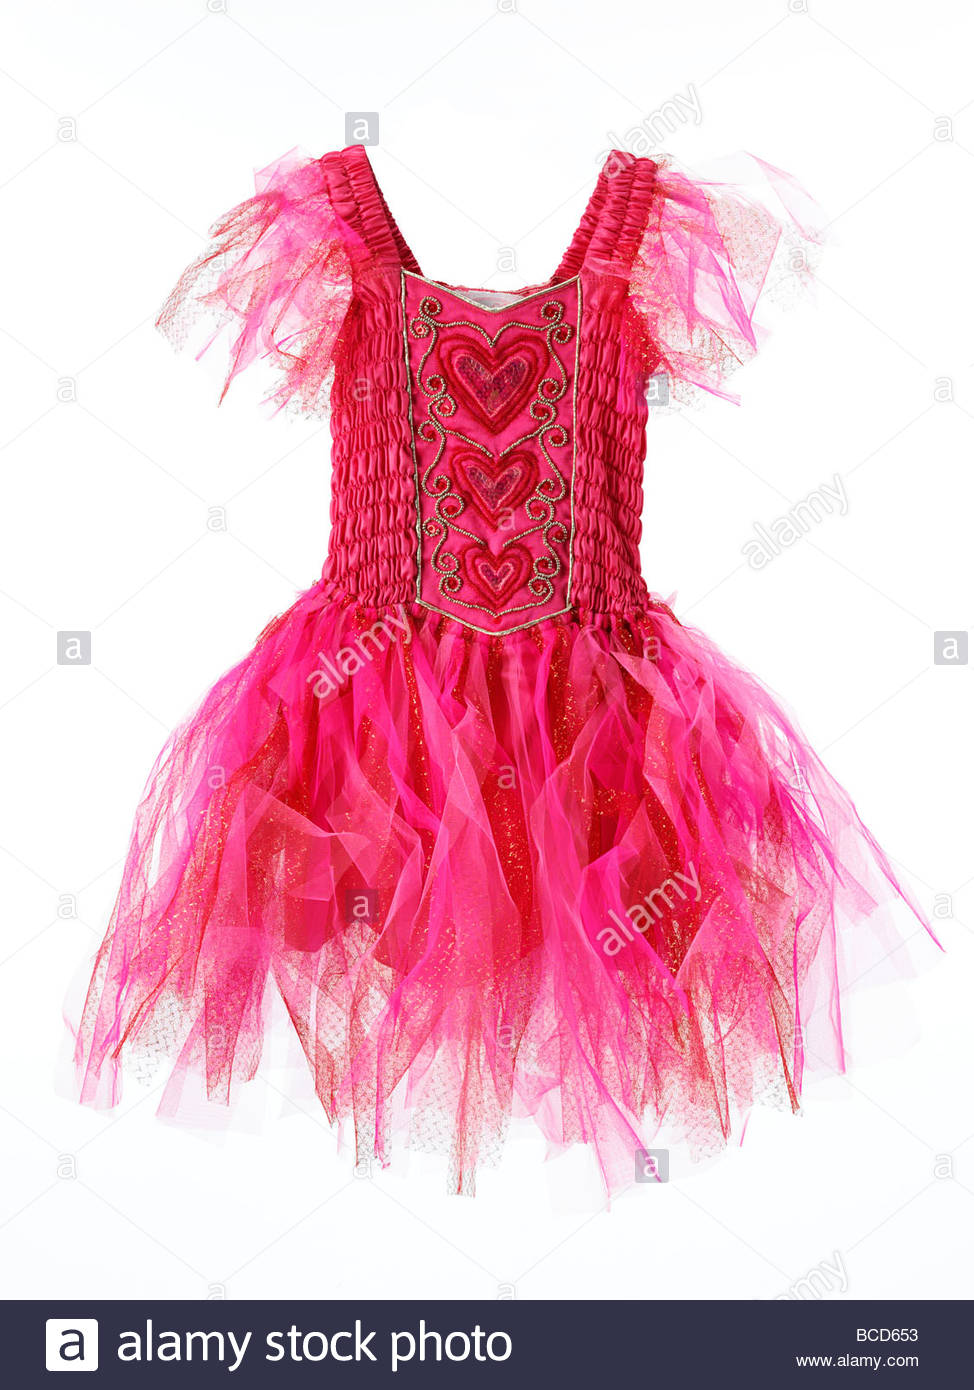 a girl's dressing up fairytale fairy princess dress isolated on a white background - Stock Image